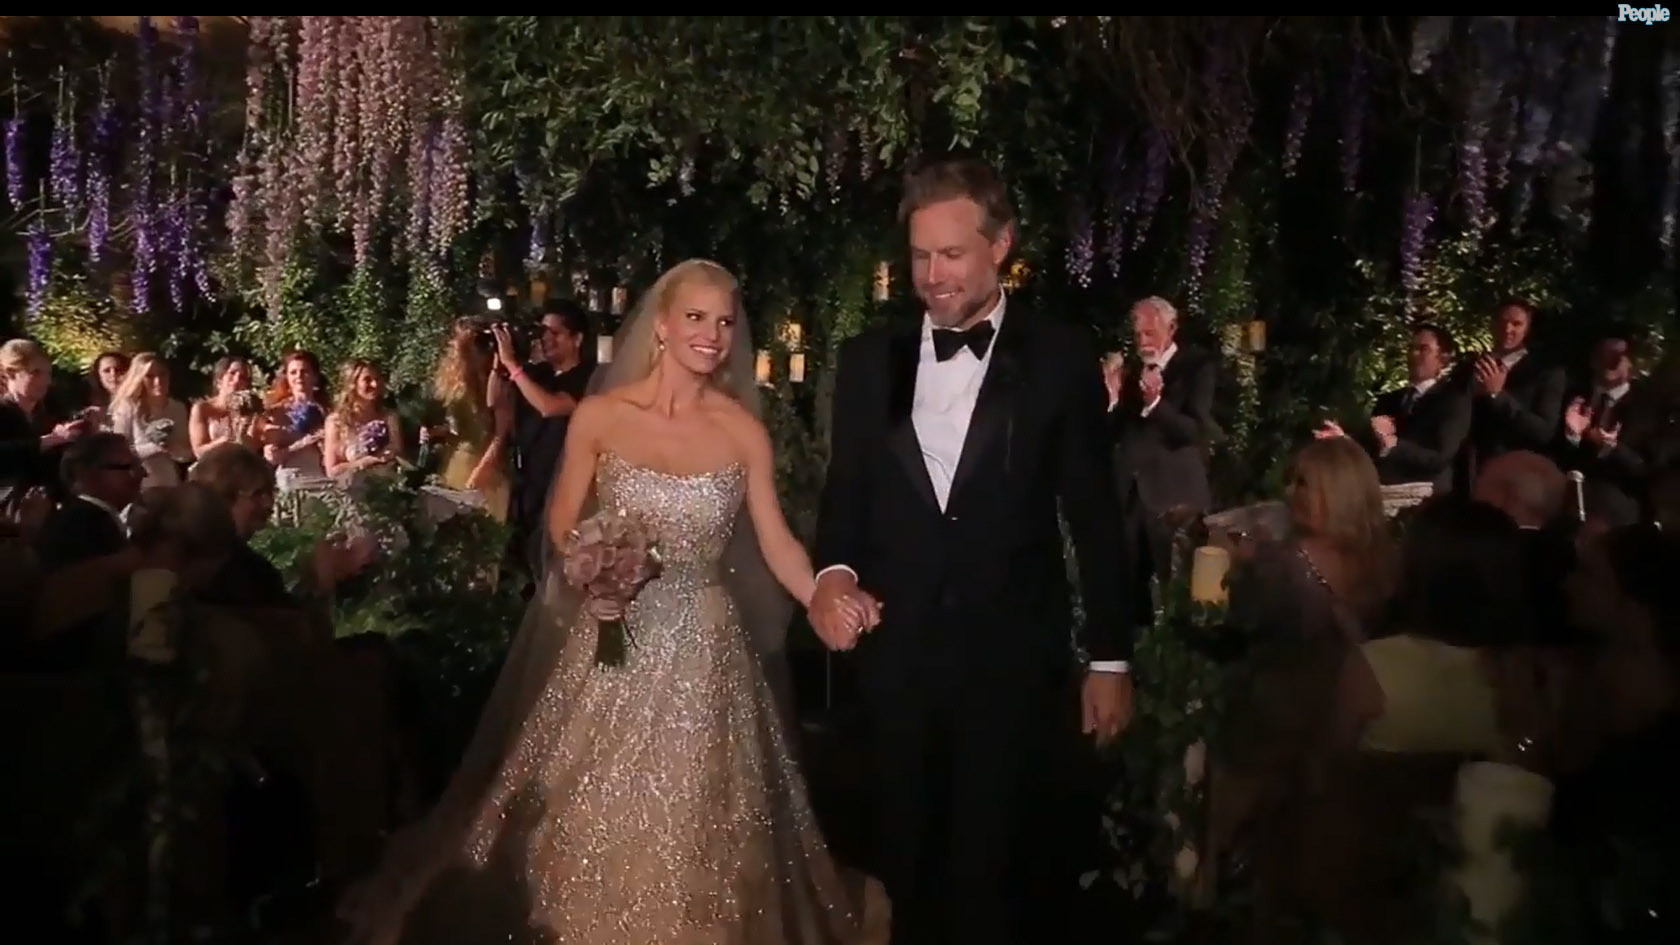 Jessica Simpson\'s wedding video shows off elegant, fun affair - LA ...